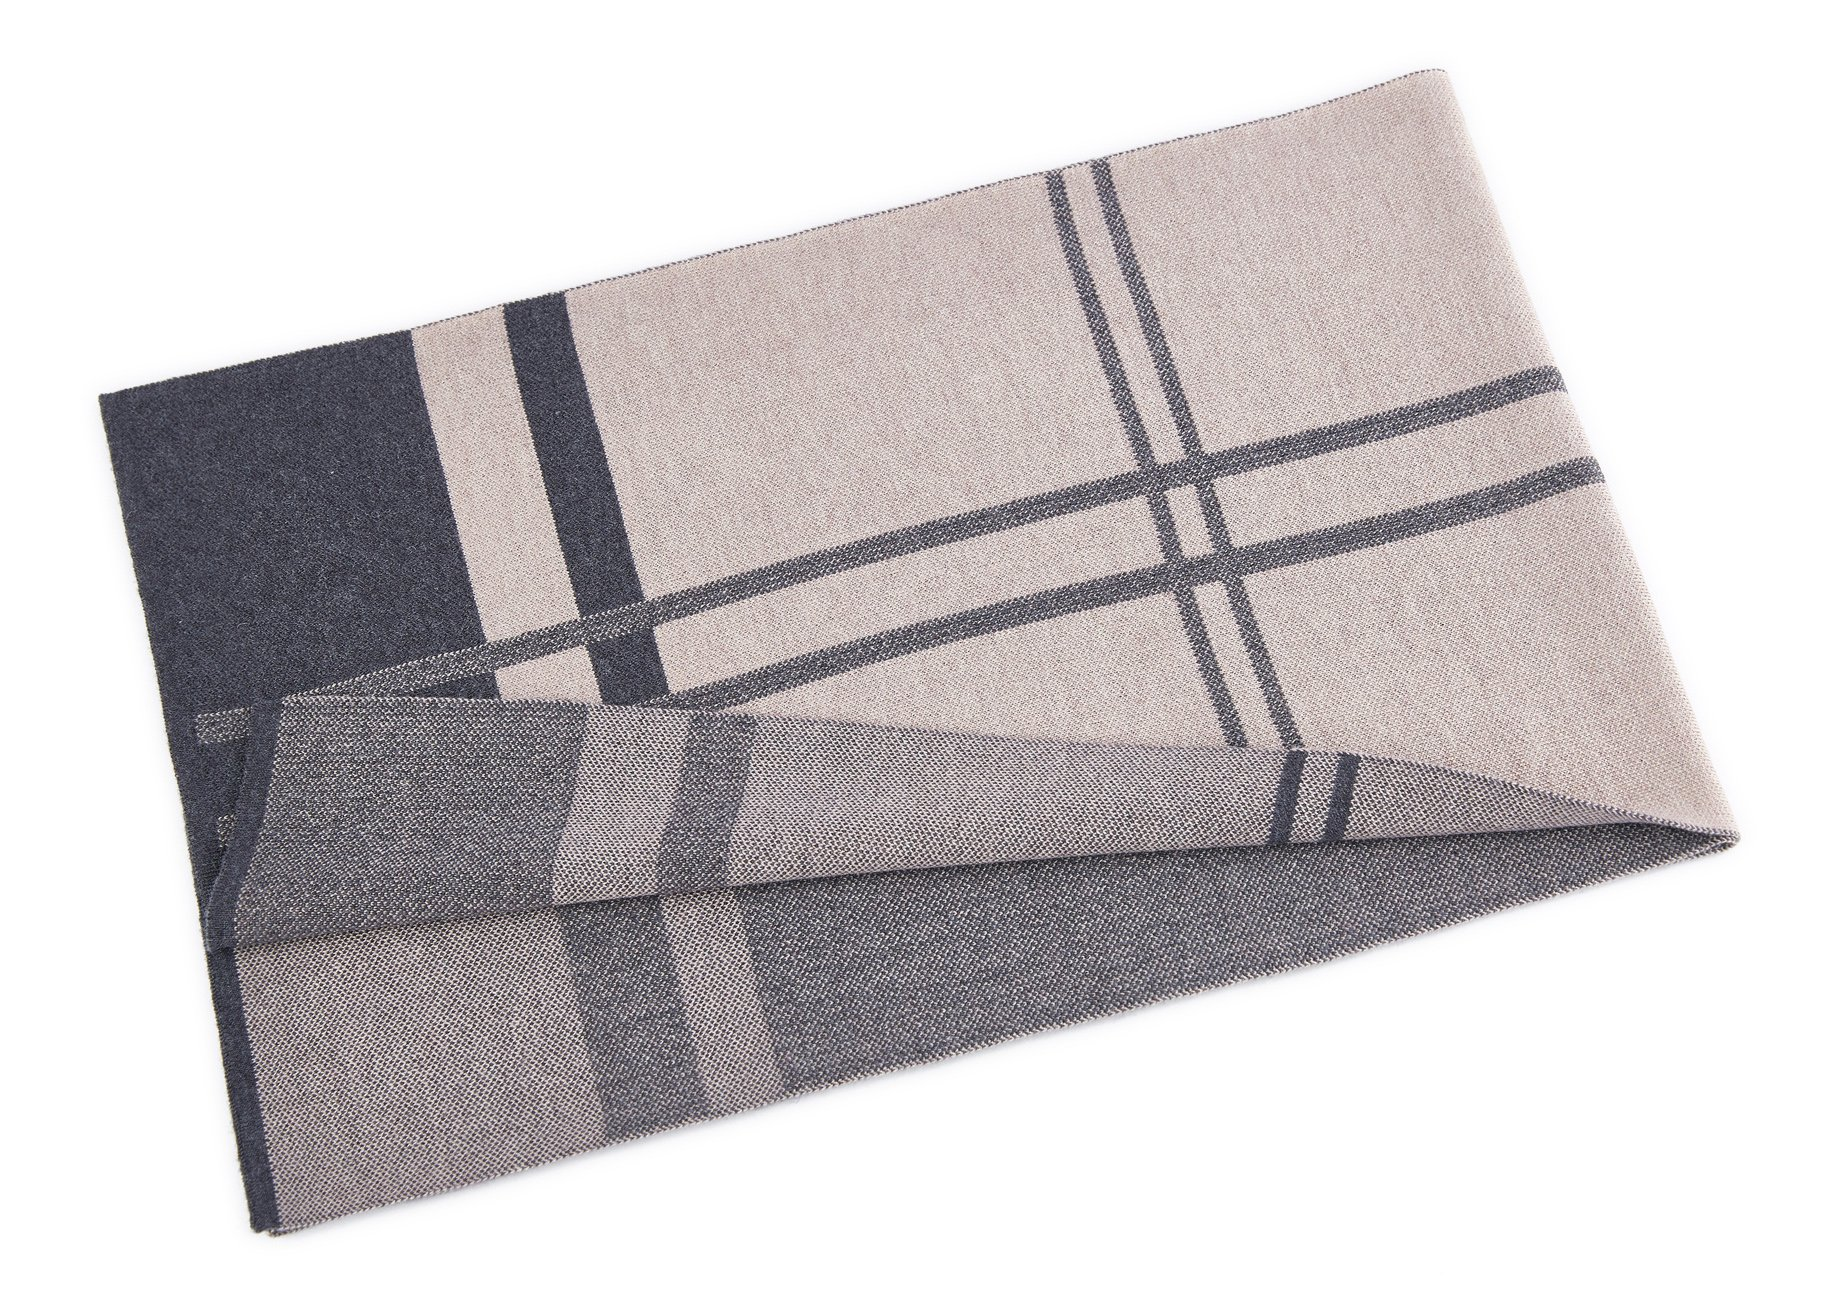 RIONA Men's Winter Cashmere Feel Australian Wool Soft Warm Knitted Scarf with Gift Box(Beige)